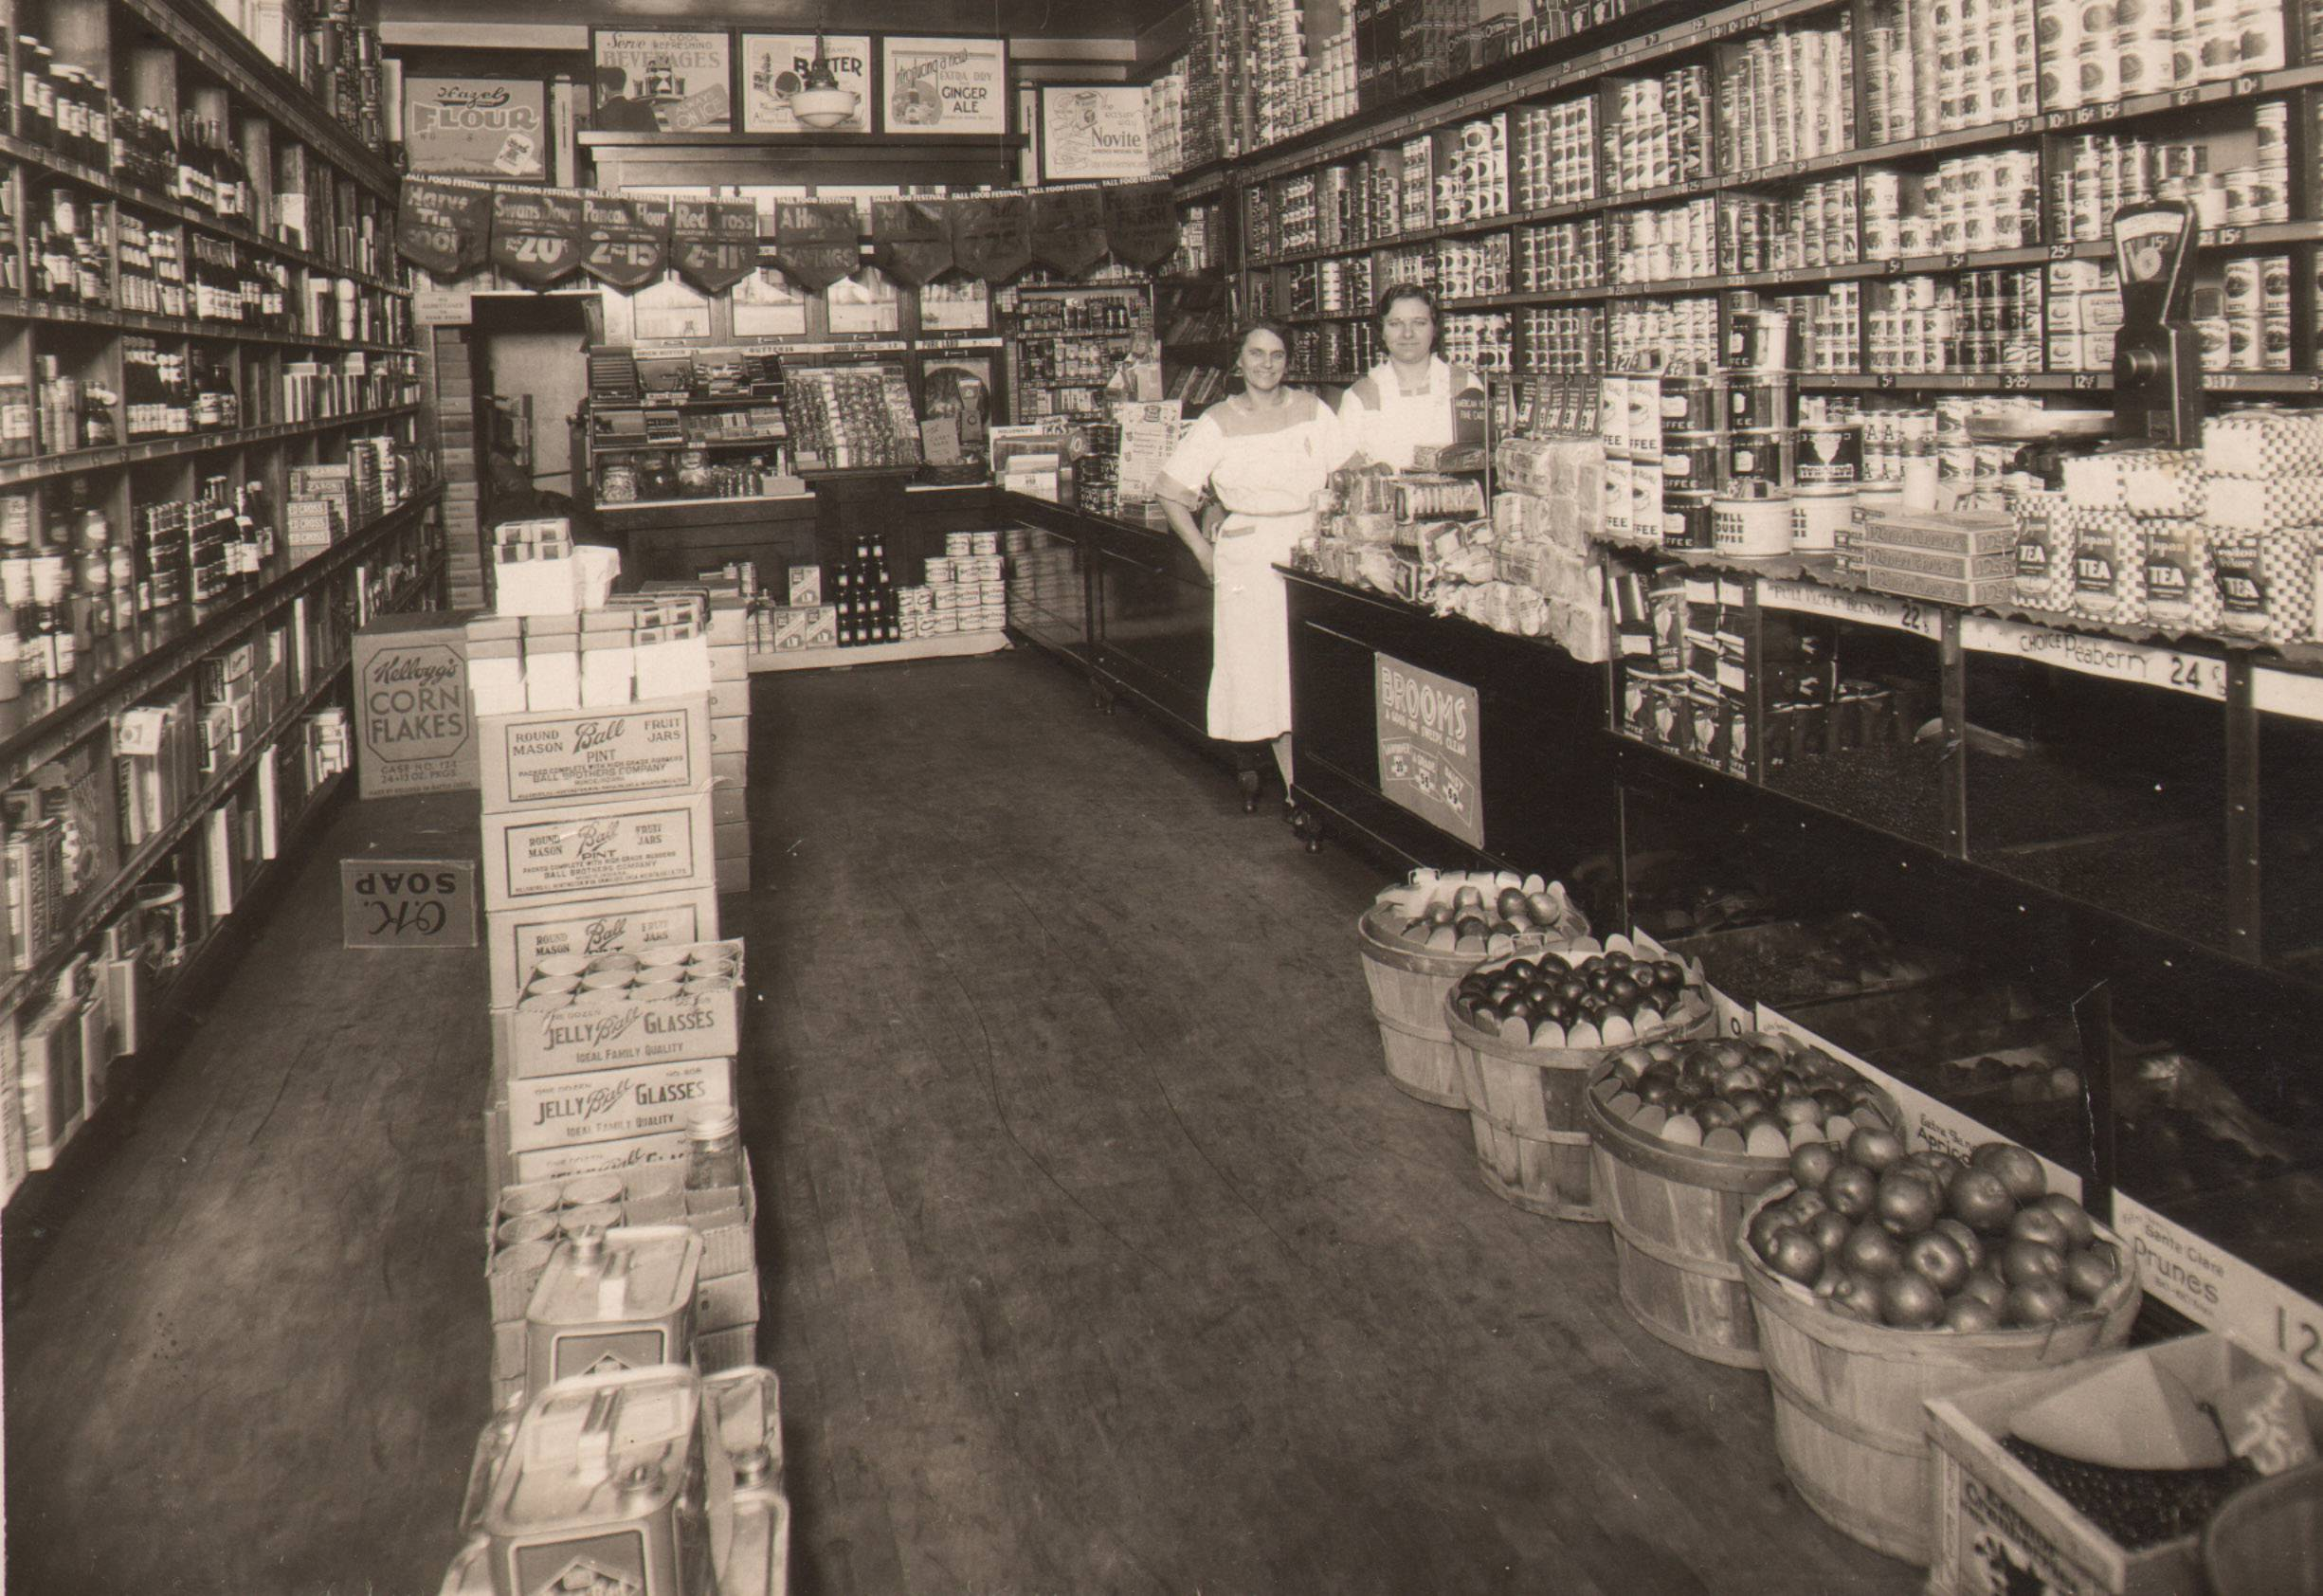 The National Tea Company was in the Busse Building from 1926 to 1948. This photo is from 1933.